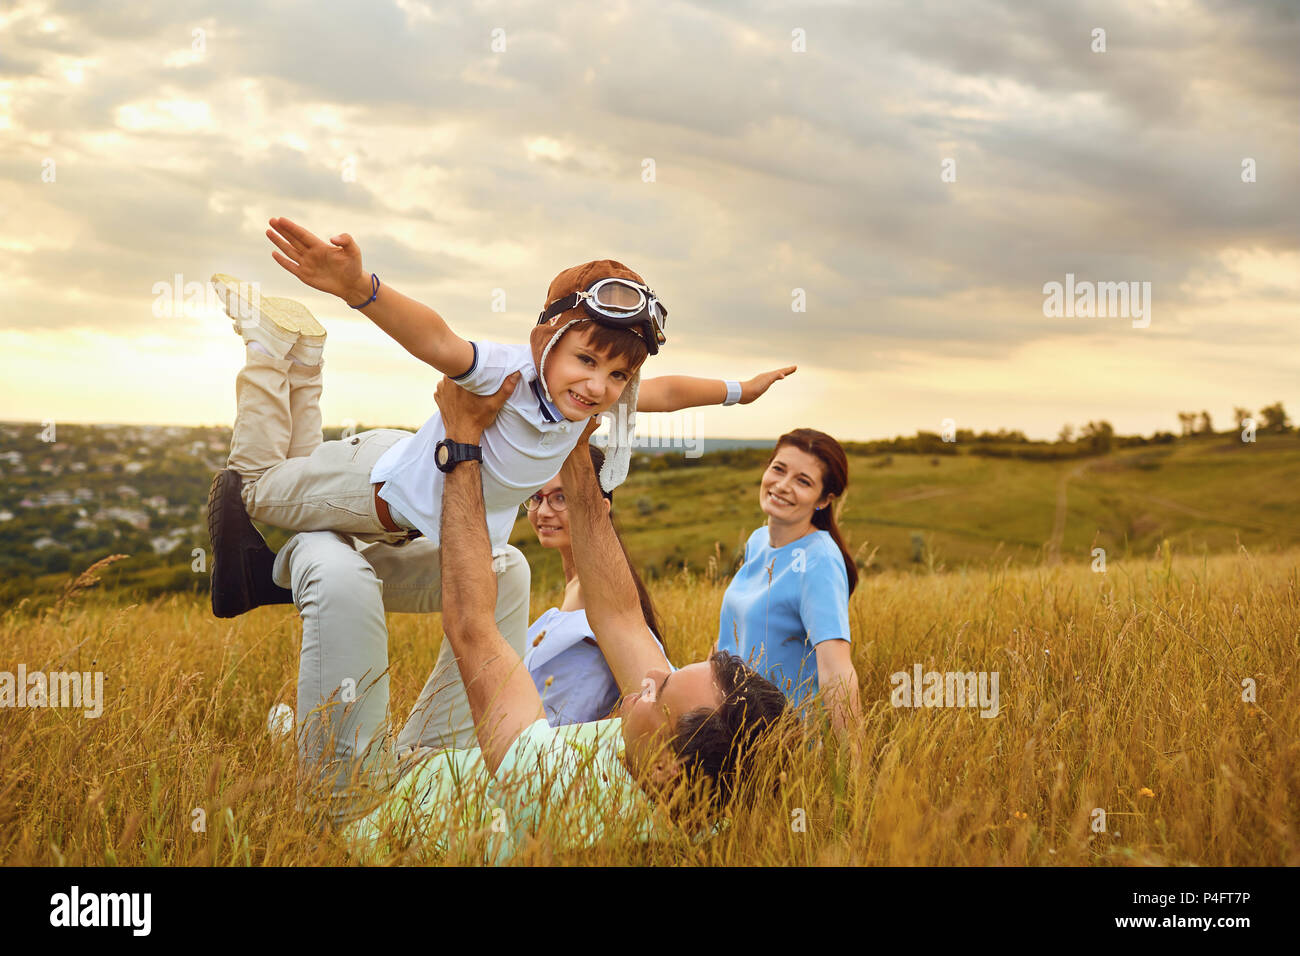 Happy family playing on grass in nature at sunset - Stock Image